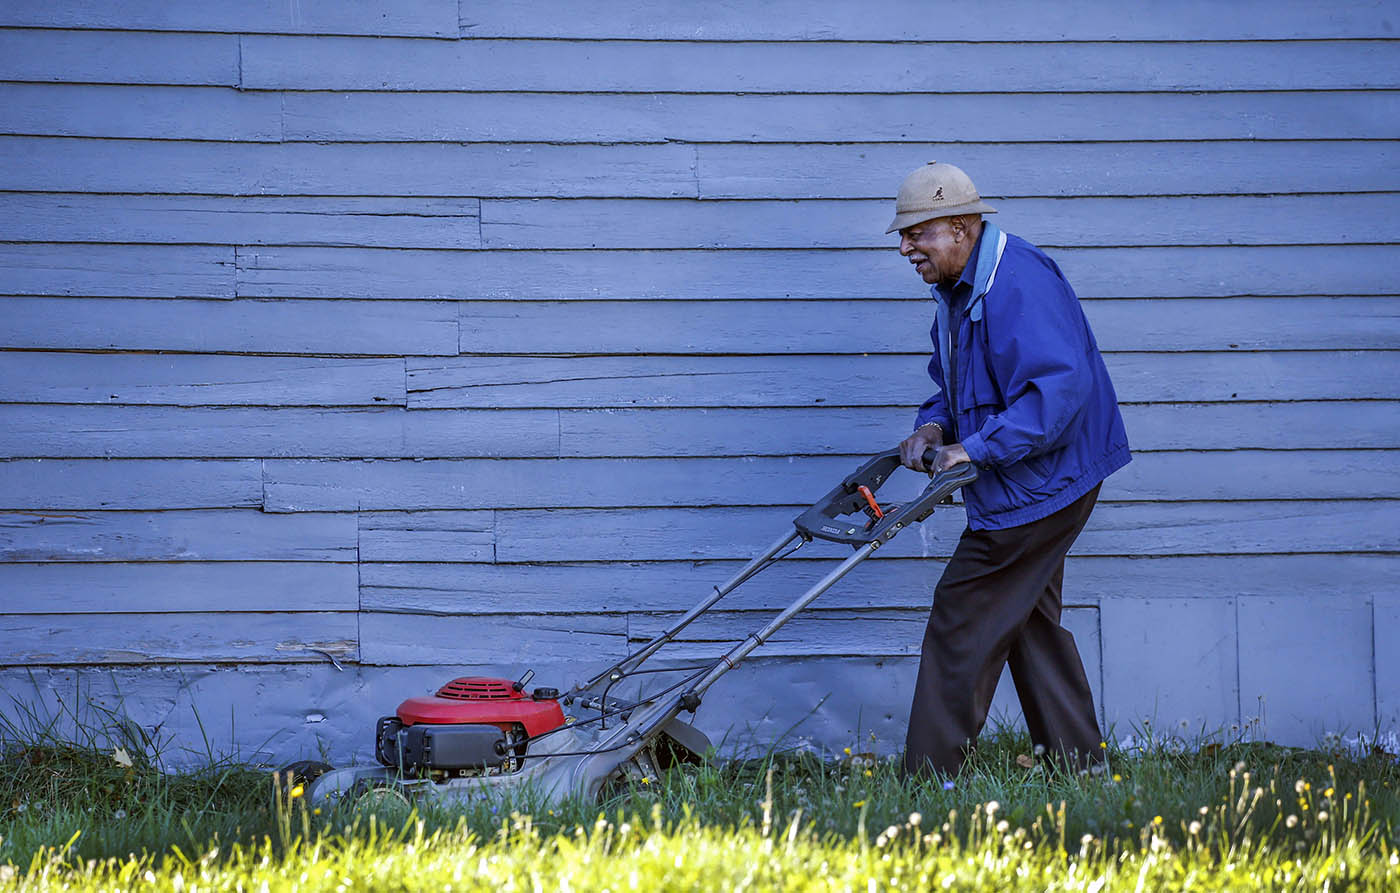 Henry Boyd takes advantage of the pleasant weather Monday to mow his lawn on Dodge Street in Buffalo, Nov. 7, 2016. (Derek Gee/Buffalo News)